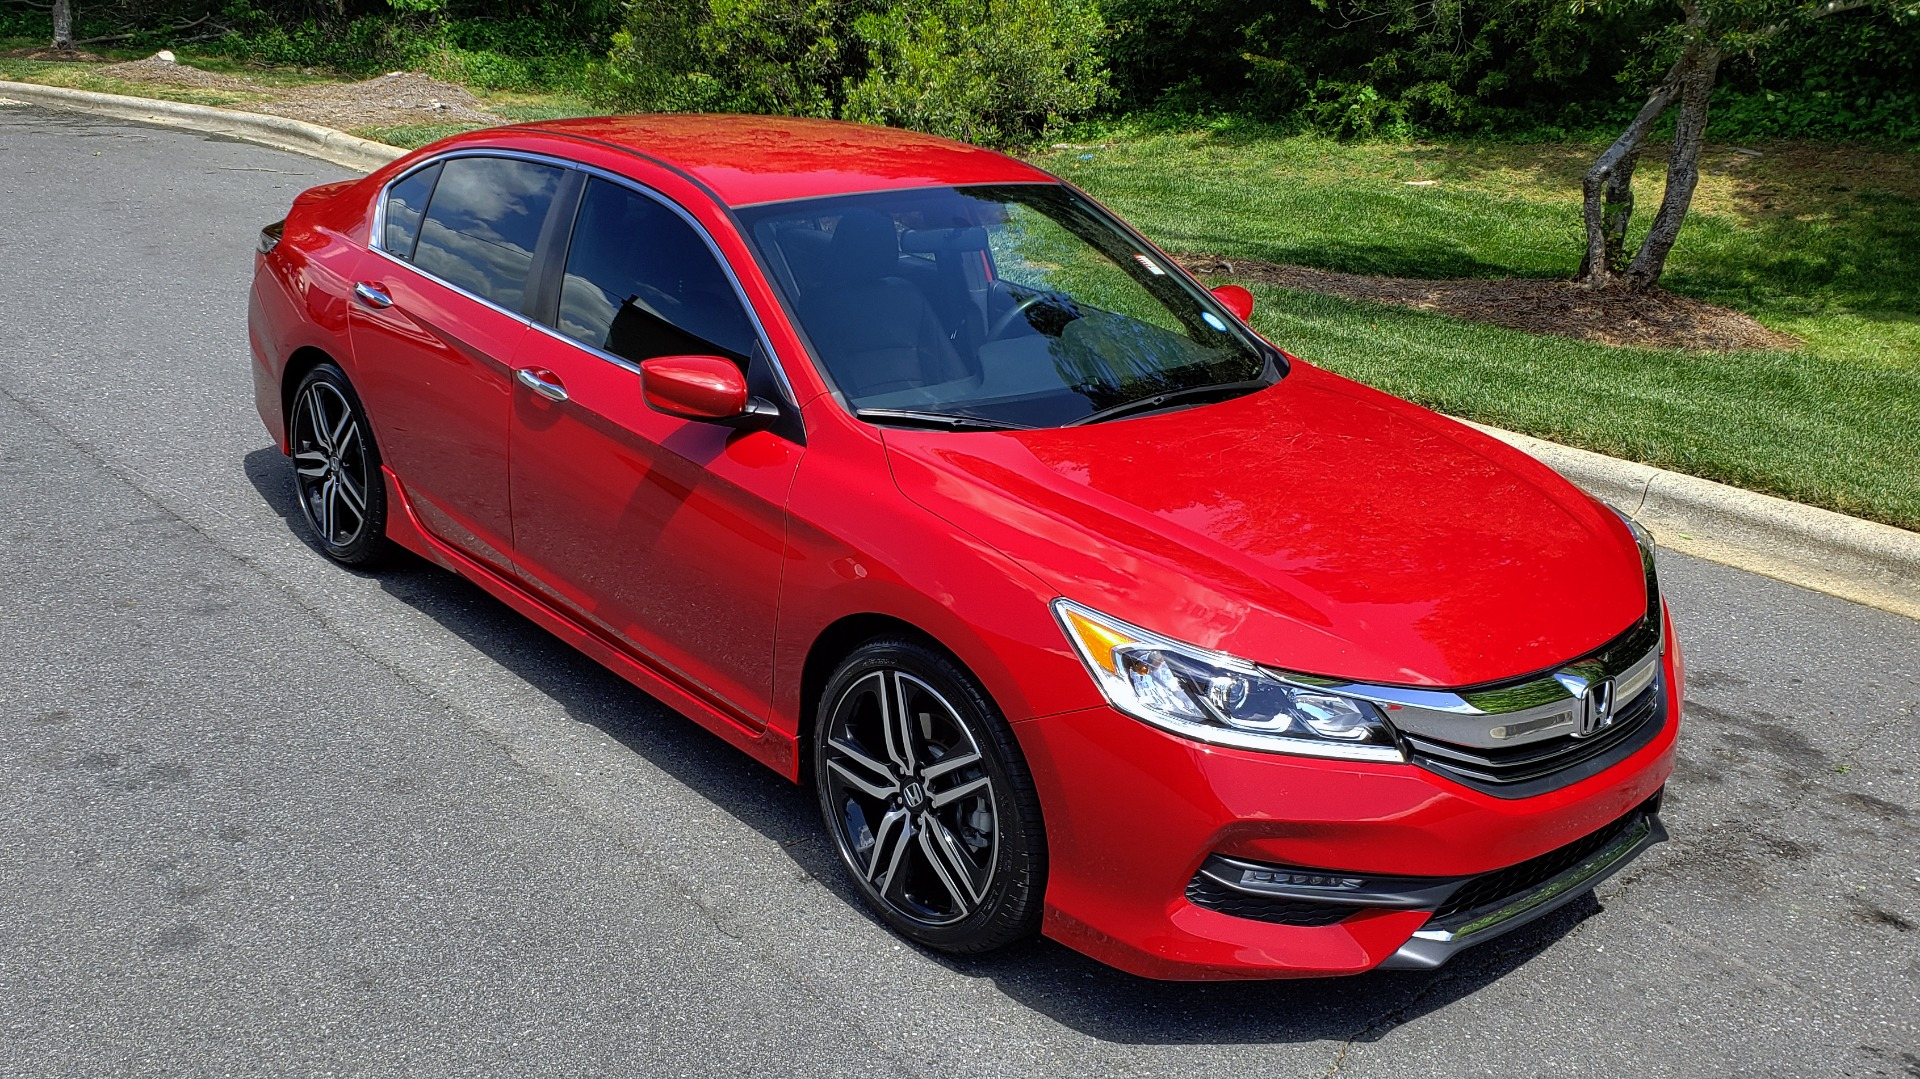 Used 2016 Honda ACCORD SEDAN SPORT / 4-CYL / CVT TRANS / SPOILER / 19IN ALLOY WHEELS for sale Sold at Formula Imports in Charlotte NC 28227 9